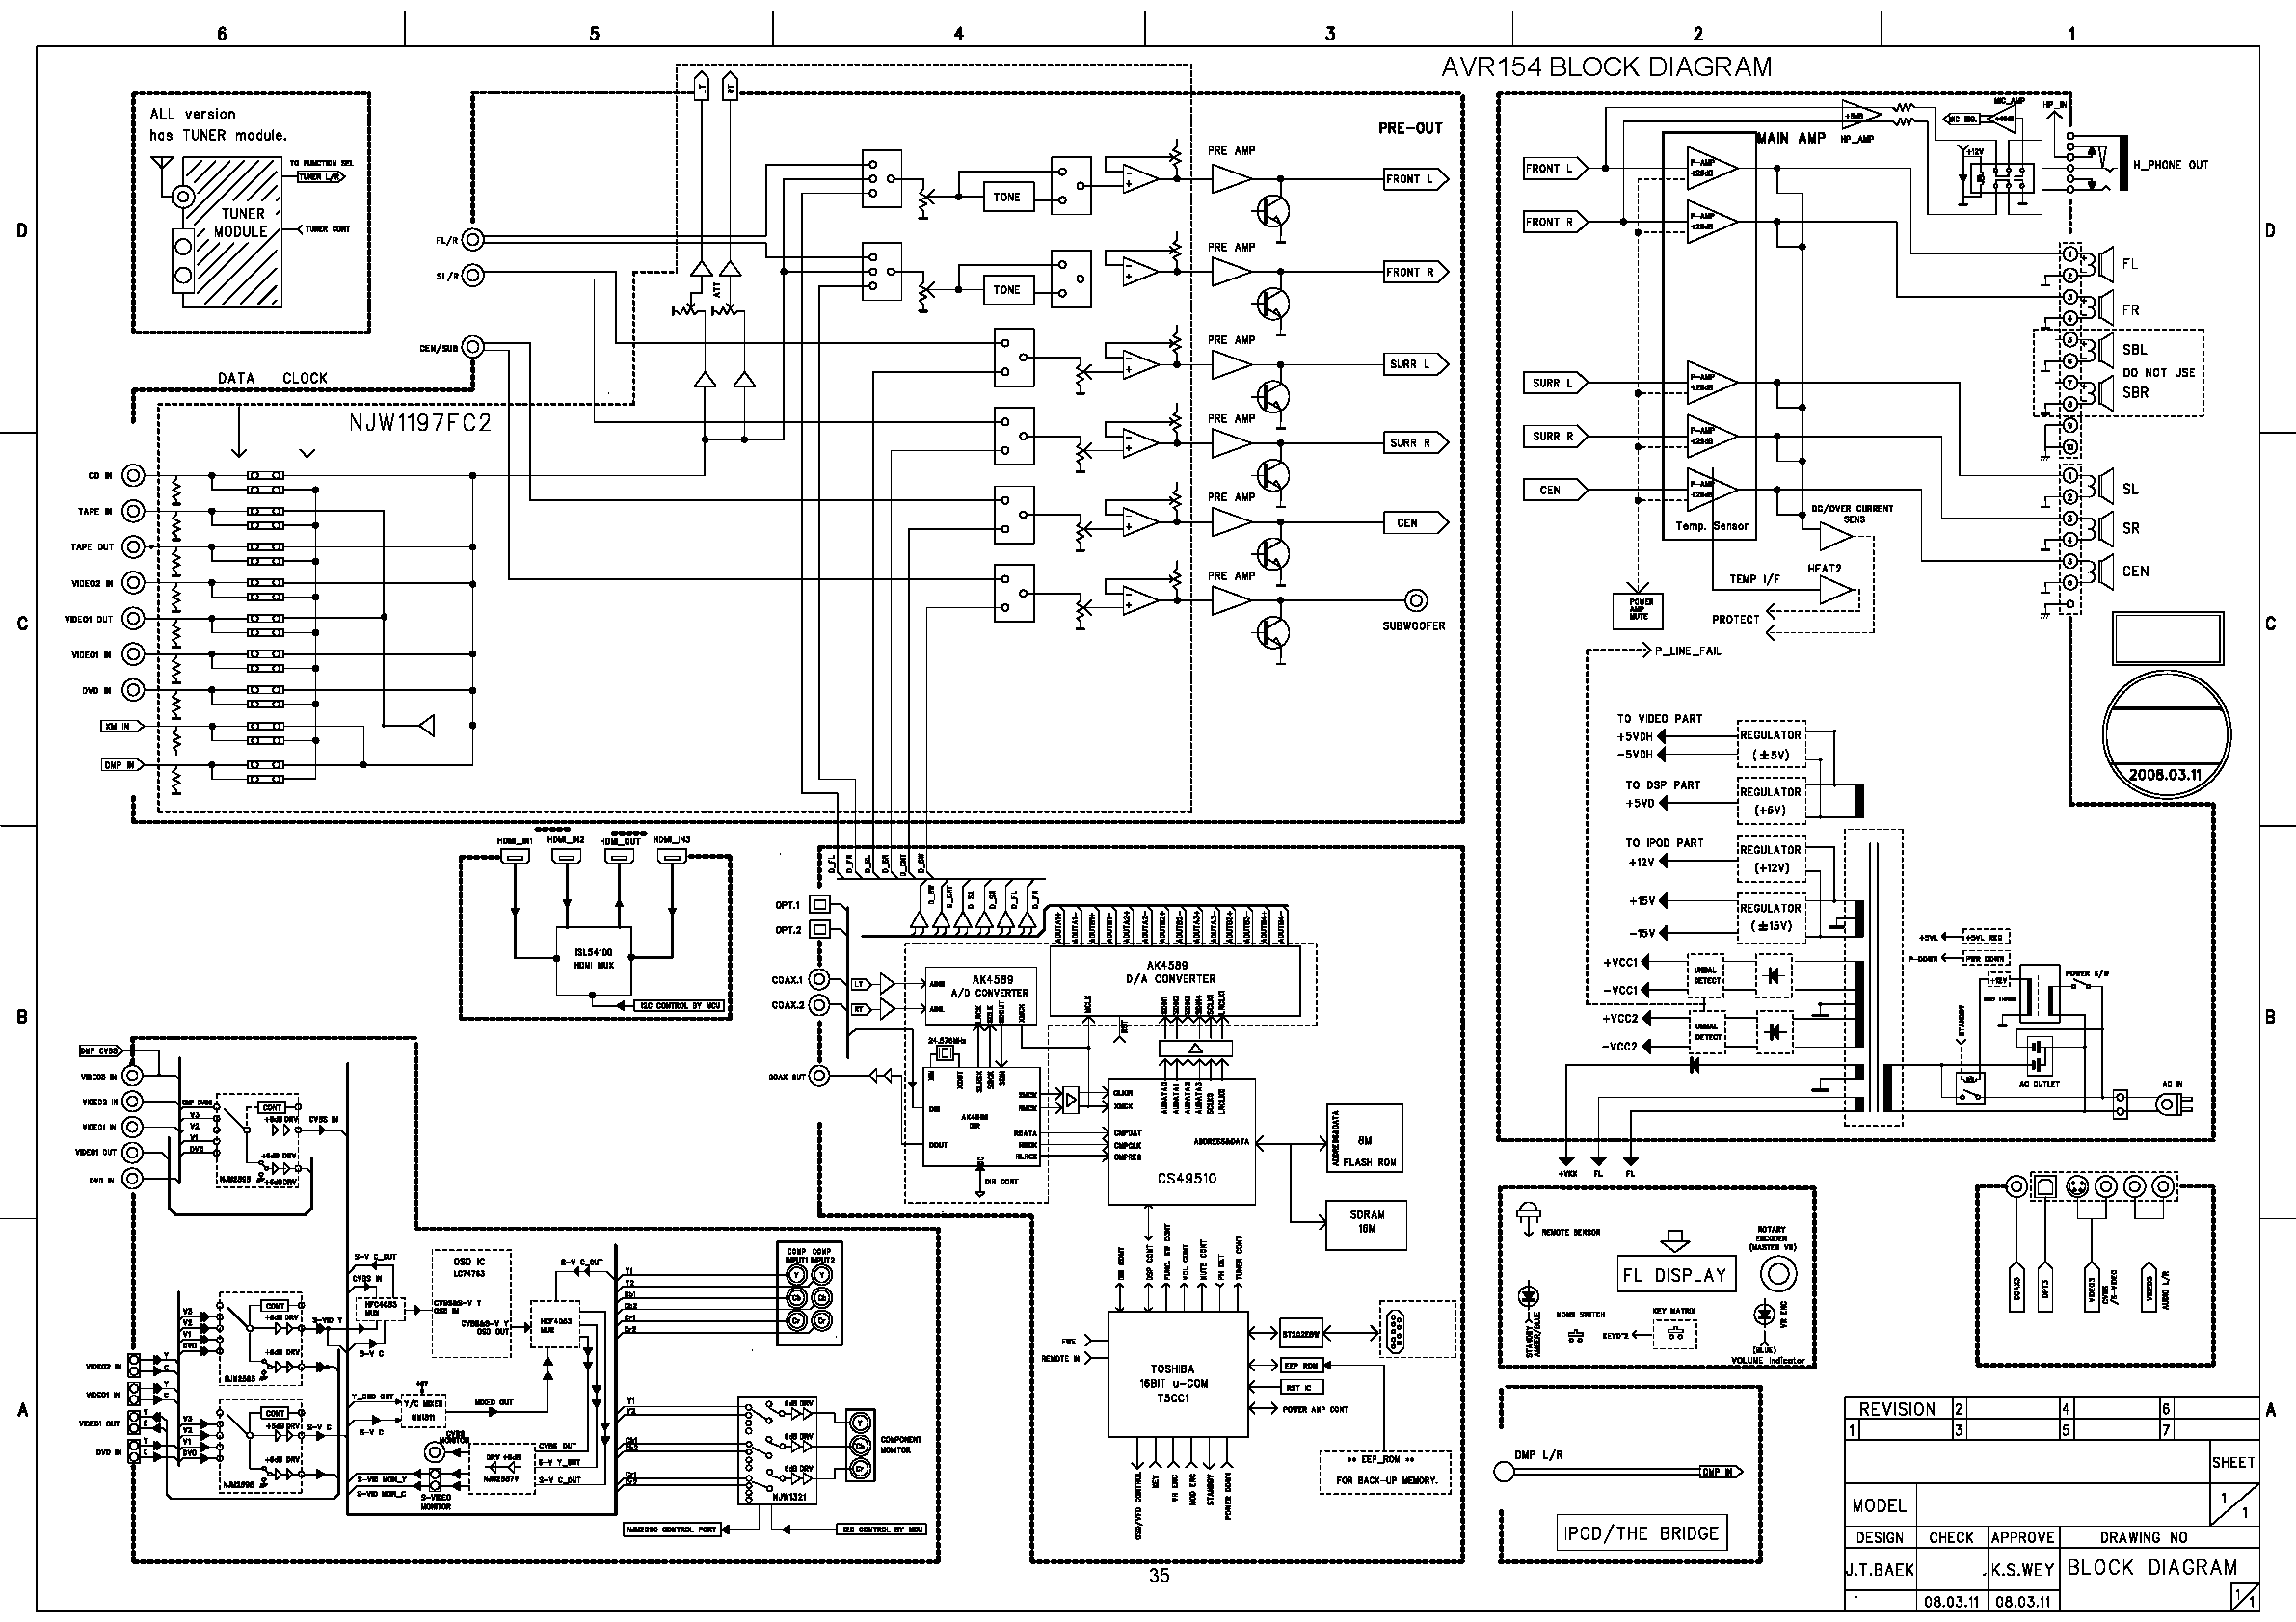 2011 dodge ram 1500 radio wiring diagram with Saturn Radio Wiring Diagram on Chevy Aveo Radio Harness Diagram additionally P34 furthermore 2004 Ram 1500 Wiring Diagram likewise P 0996b43f80cadd60 additionally 1y33v Wires Go Reverse Lights What Color One.